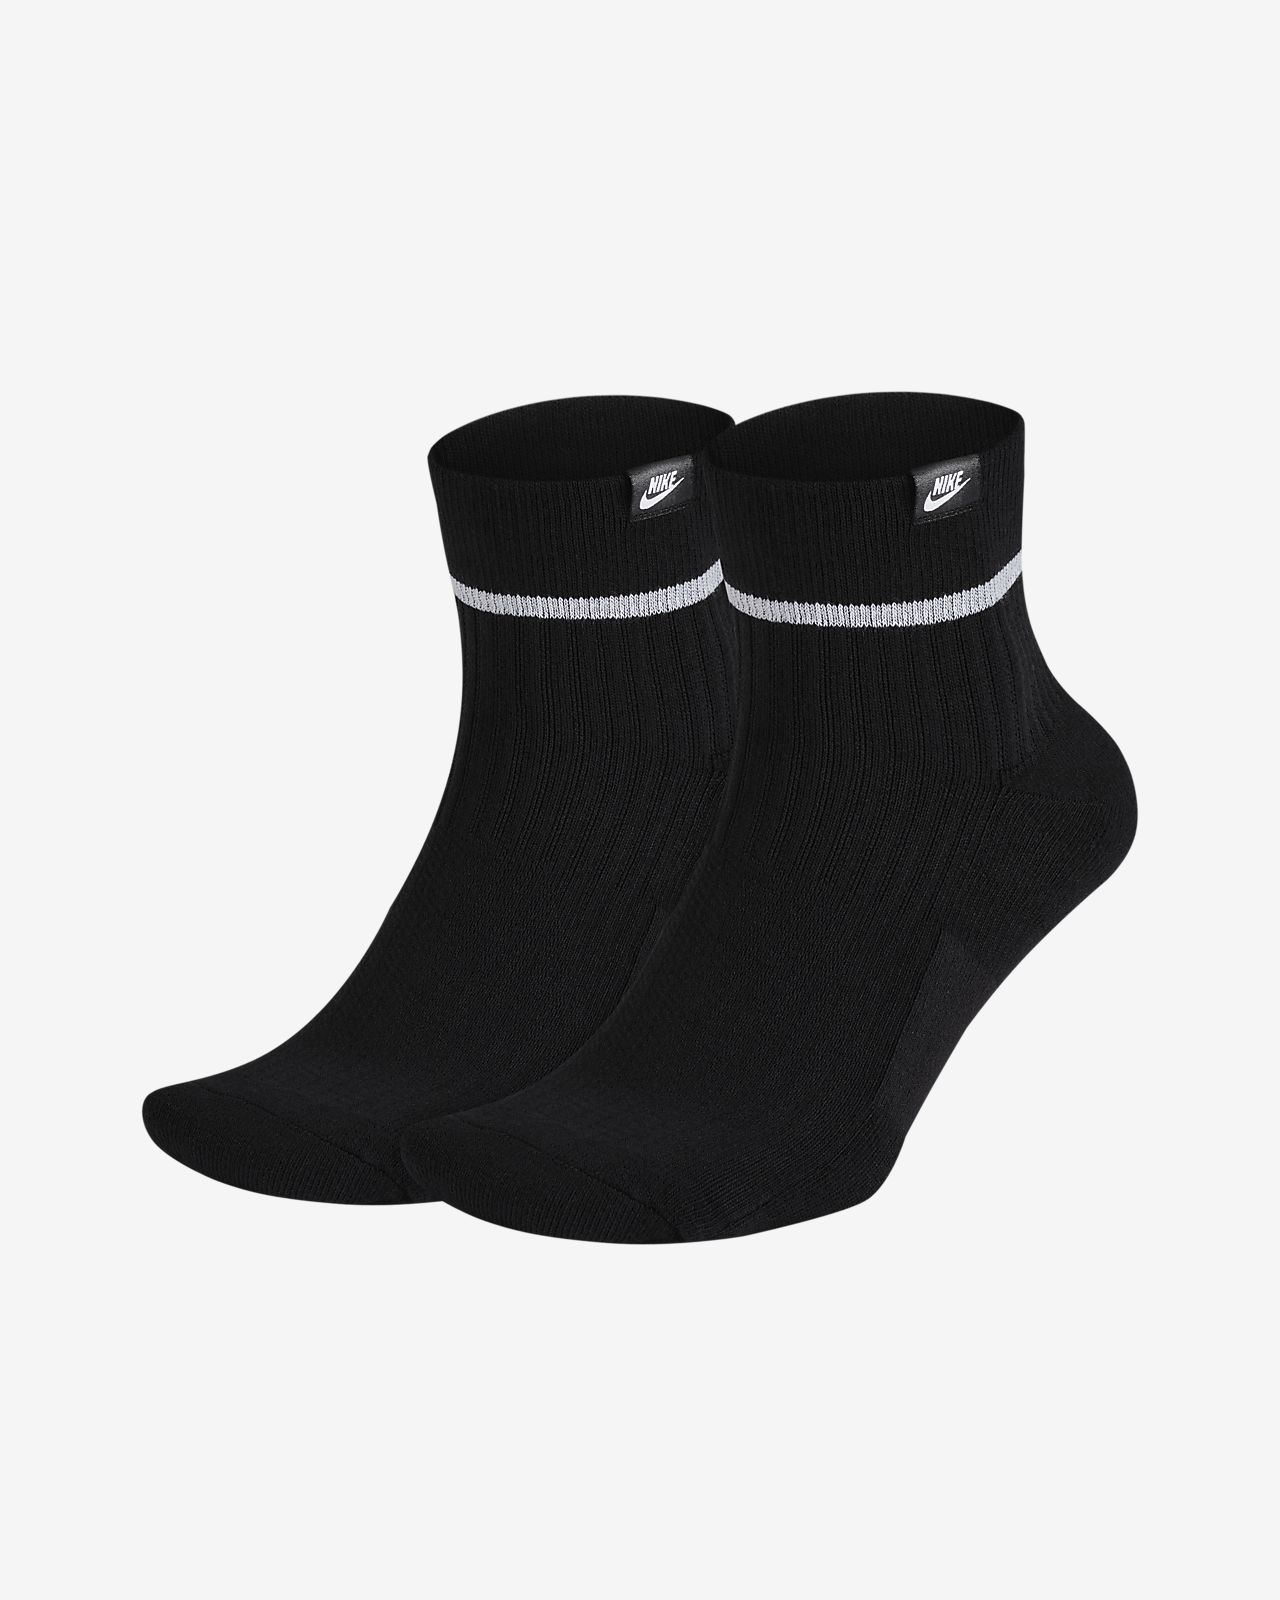 Nike SNKR Sox Essential Ankle Socks (2 Pairs)